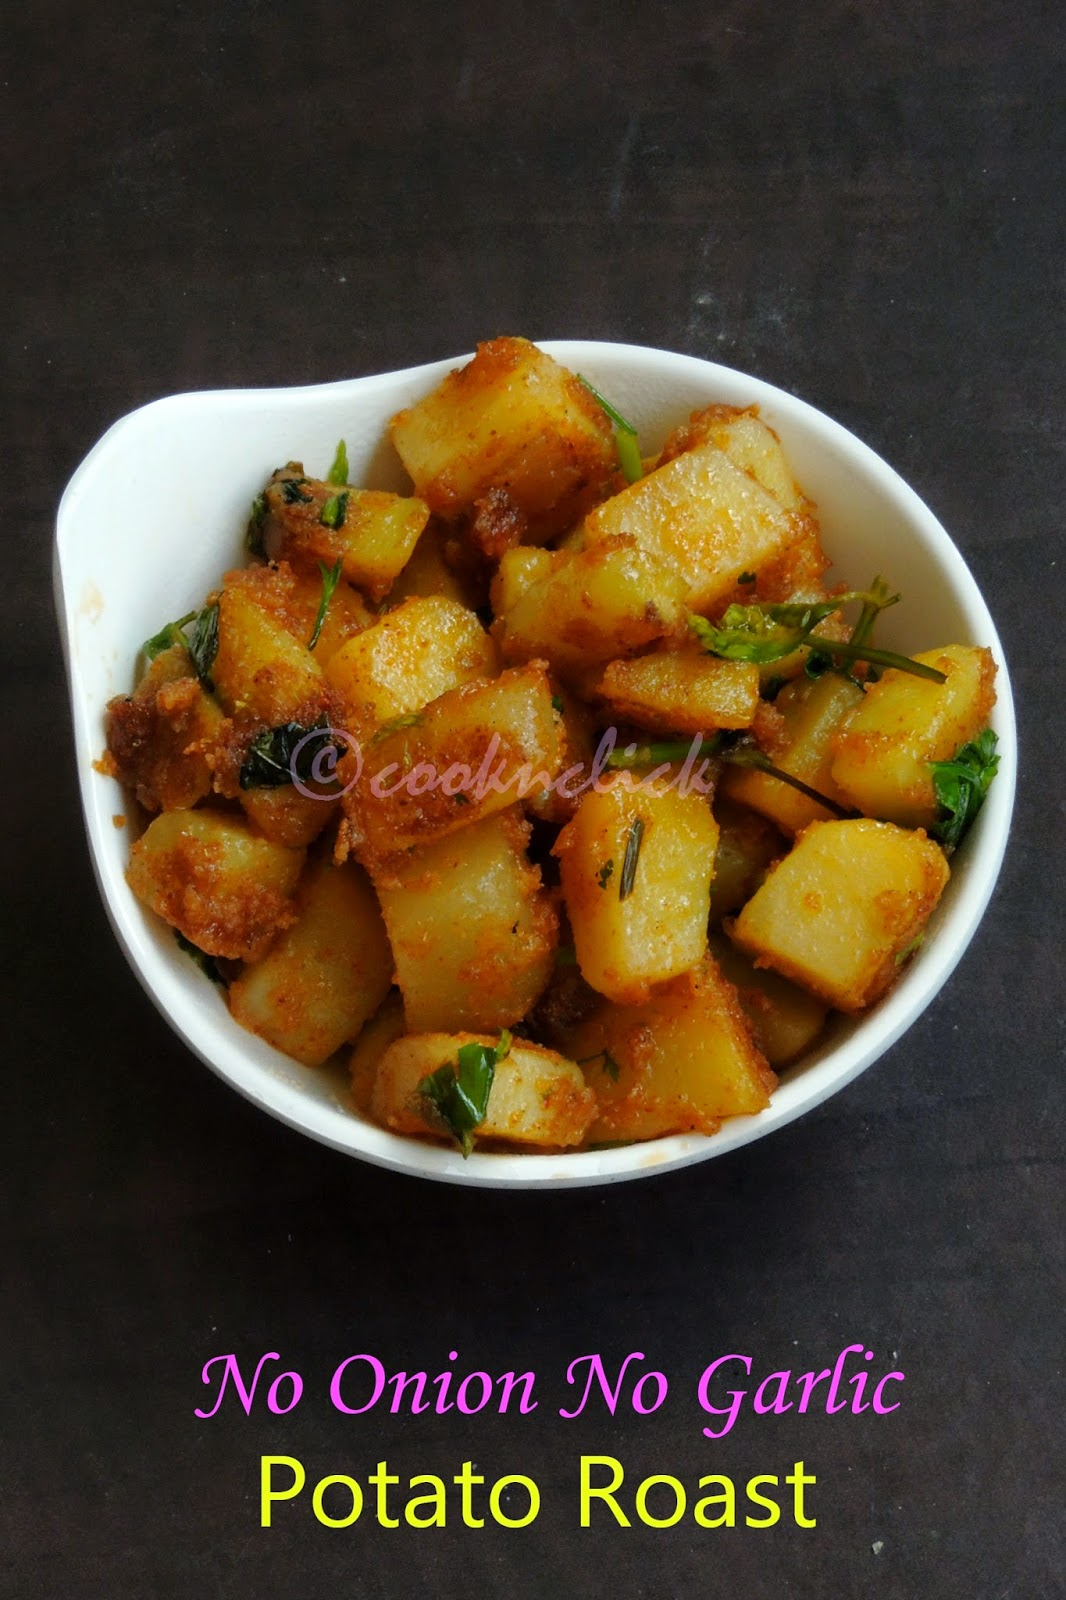 Easy Potato roast, no garlic no onion potato roast